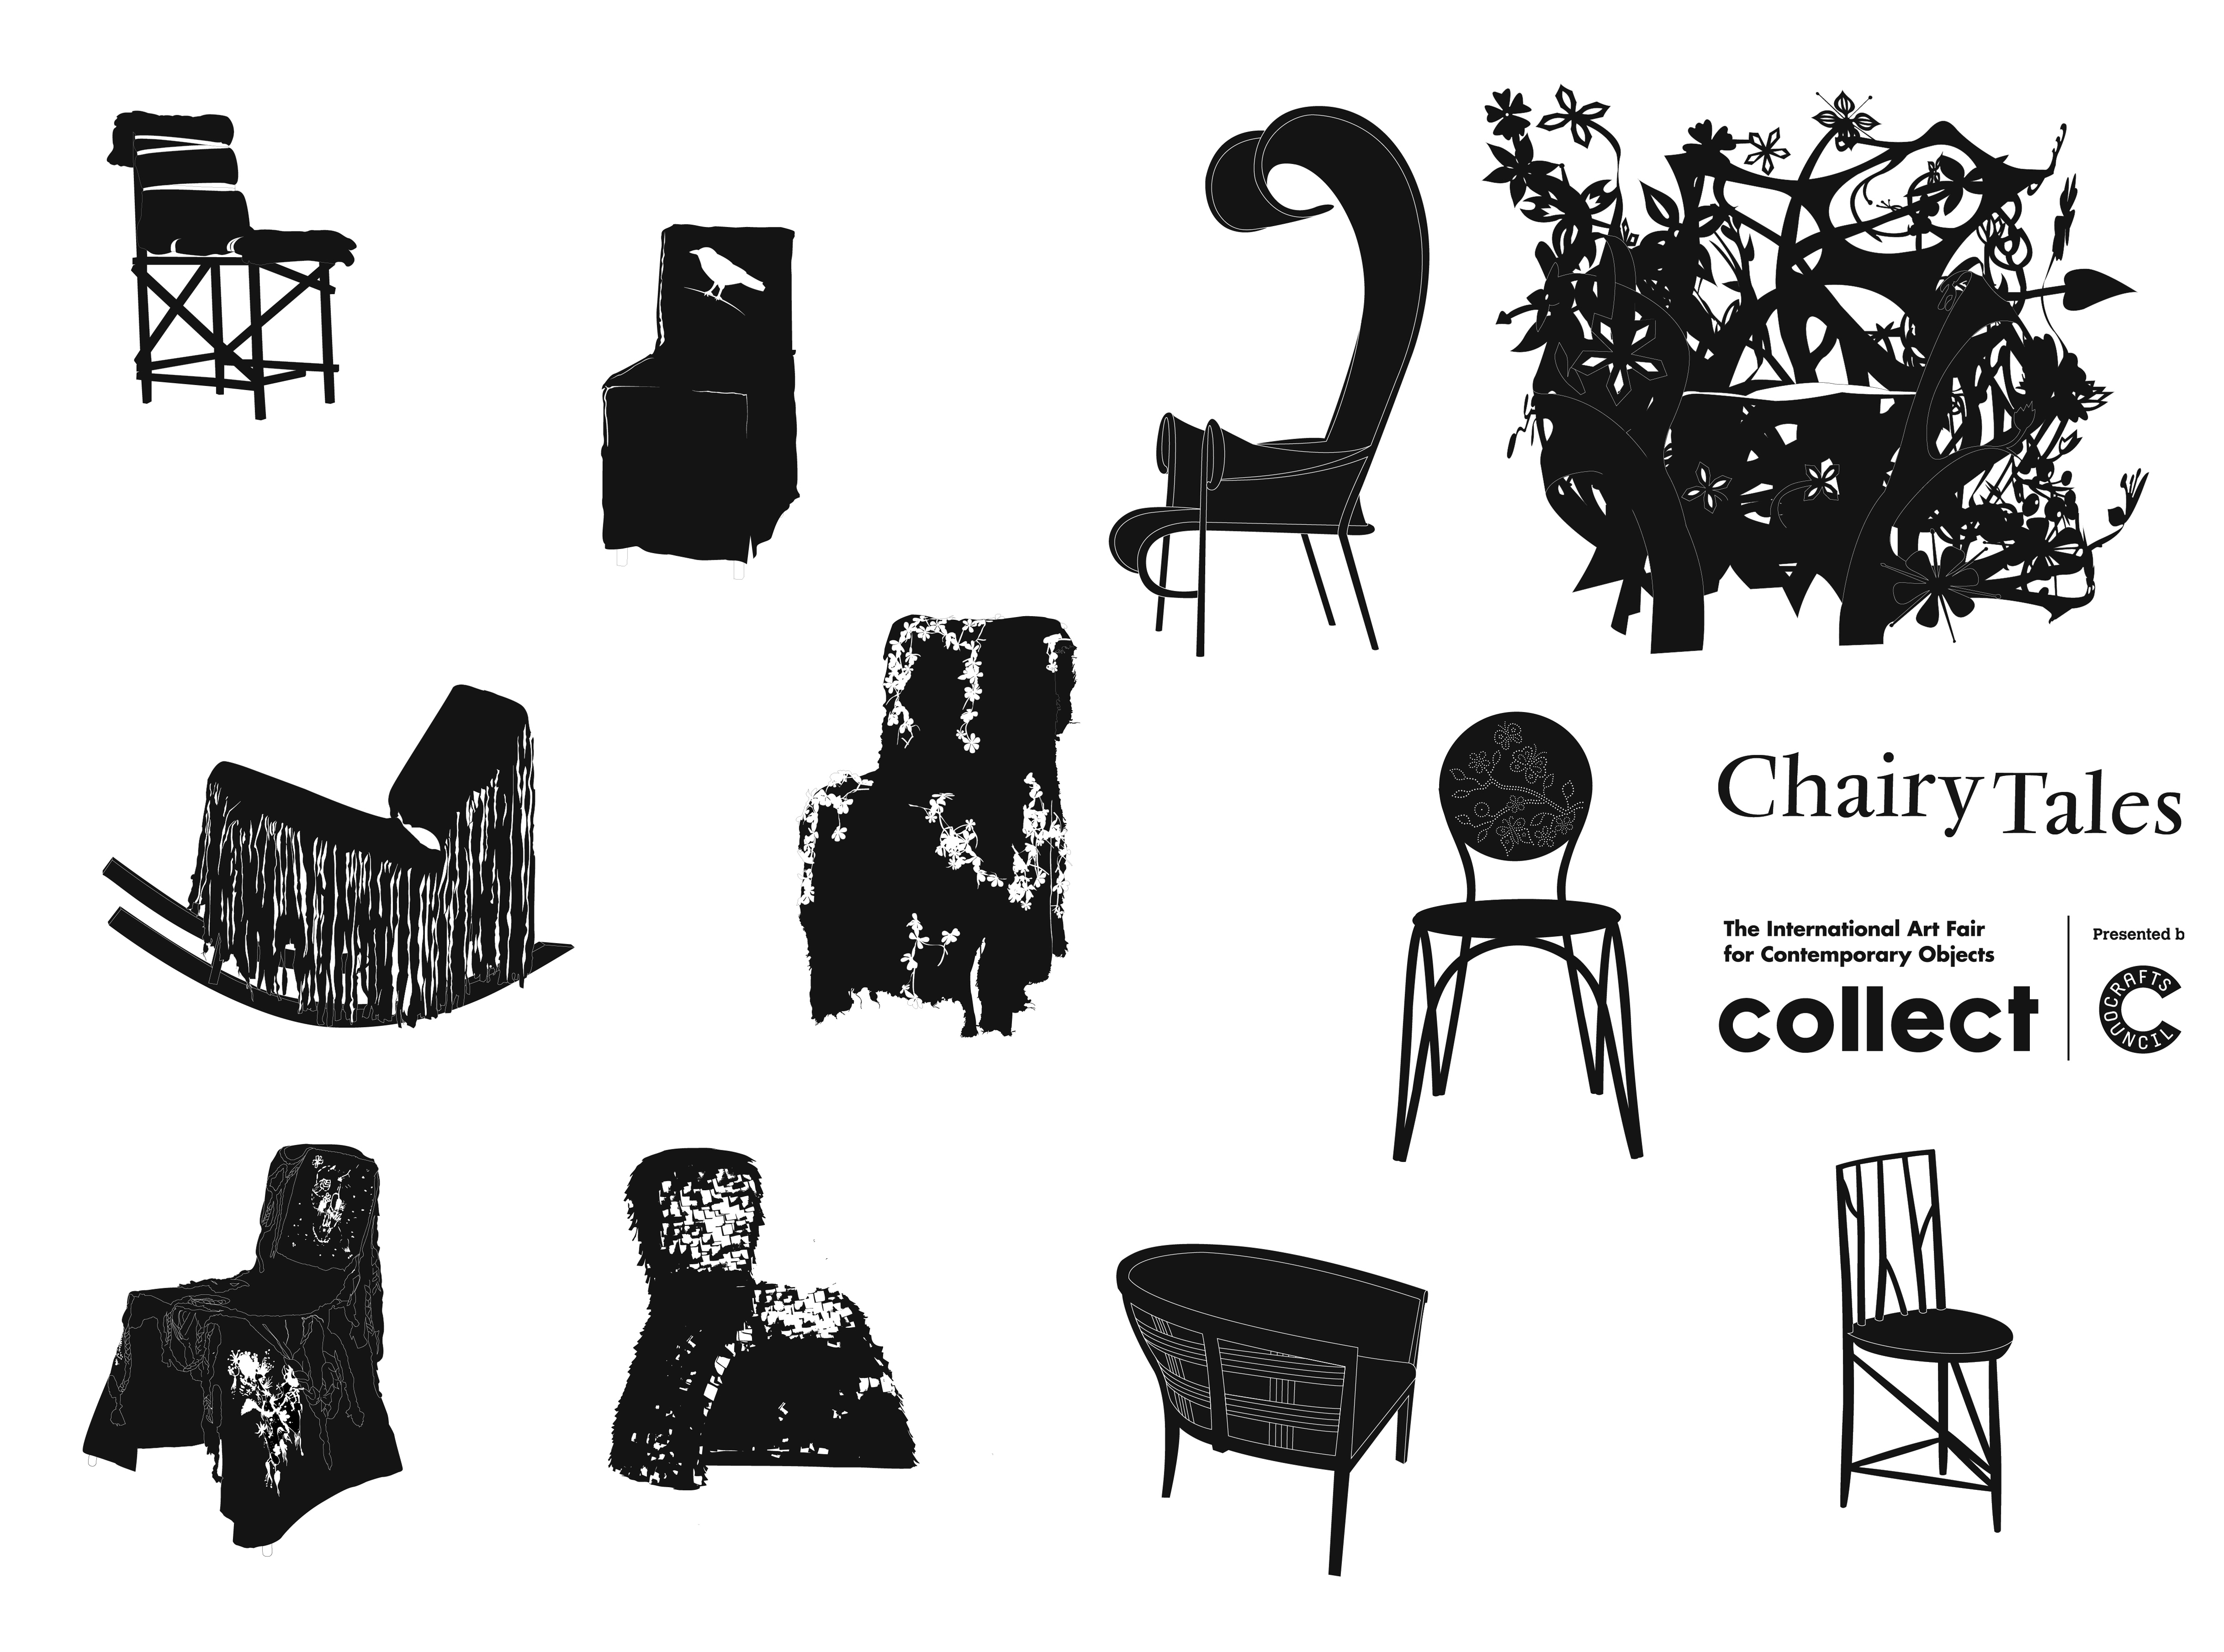 Chairy Tales at COLLECT: The International Art Fair for Contemporary Objects